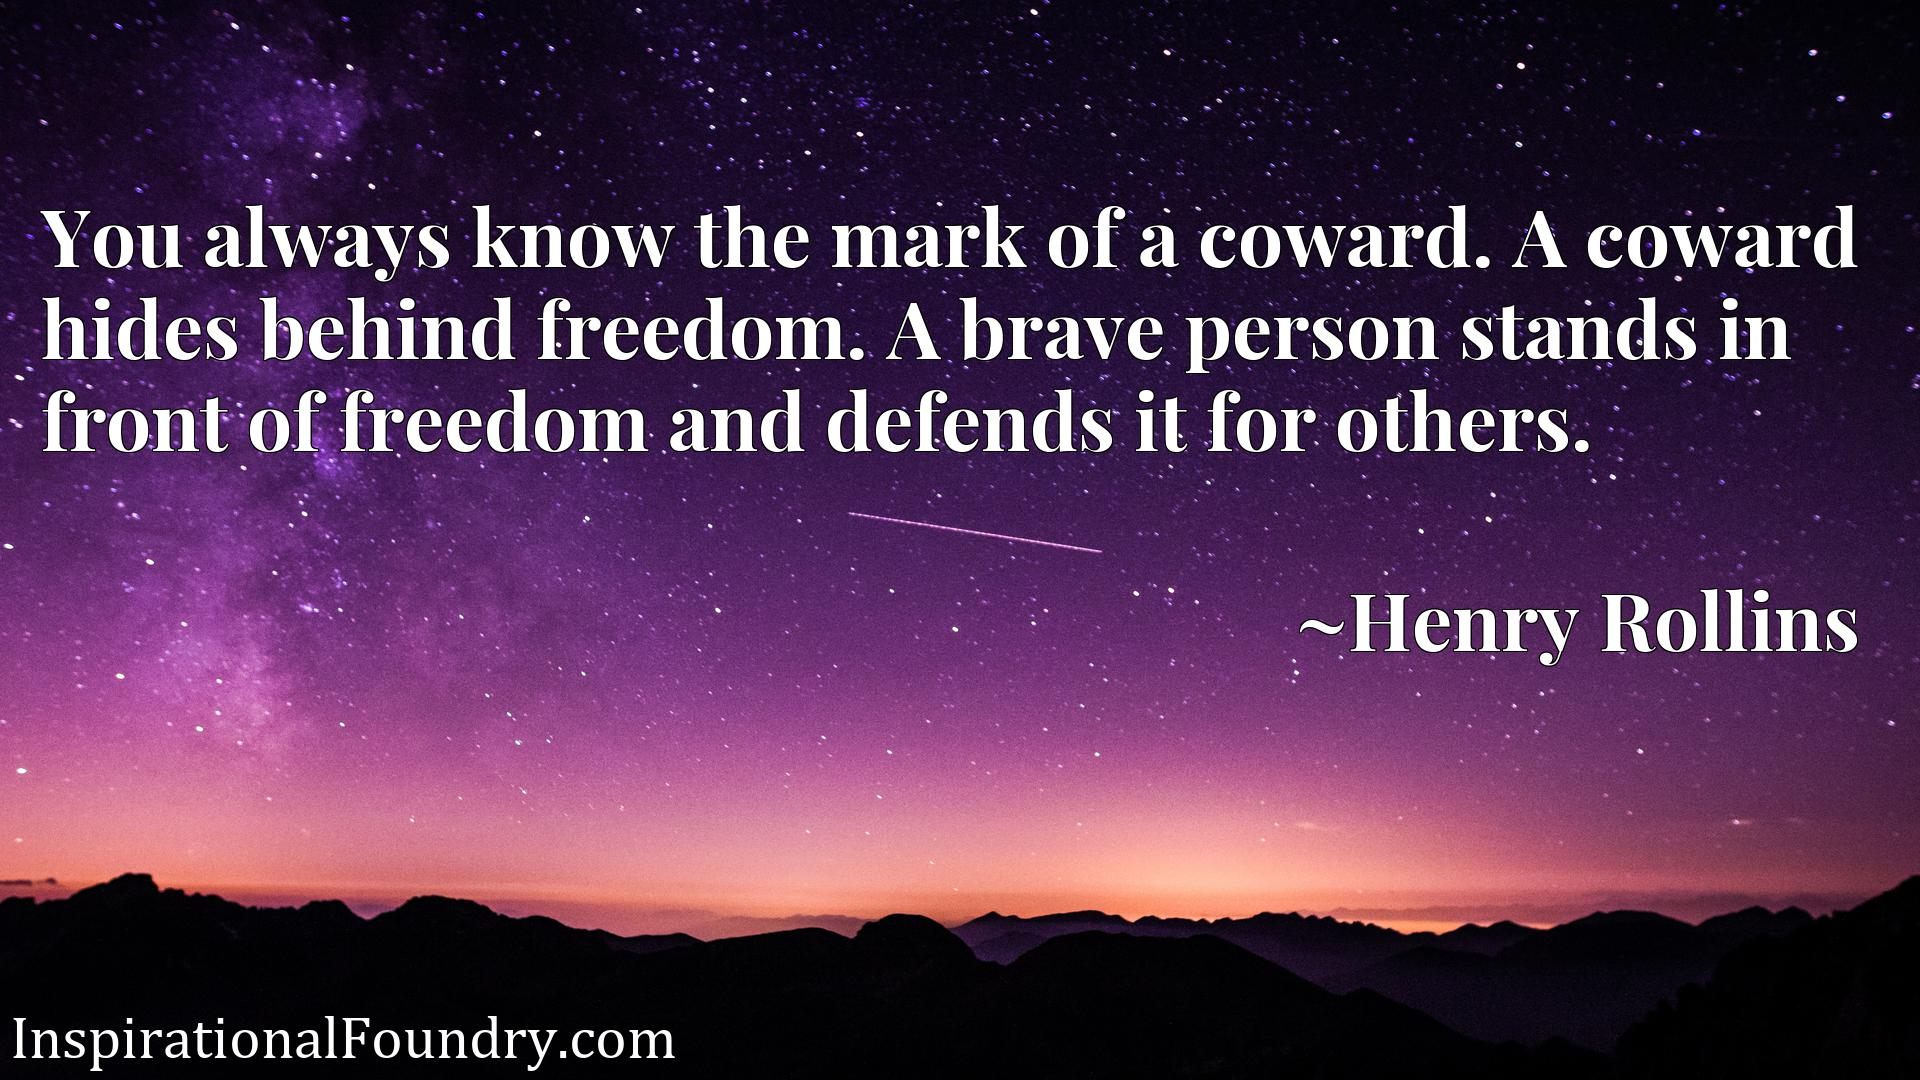 You always know the mark of a coward. A coward hides behind freedom. A brave person stands in front of freedom and defends it for others.